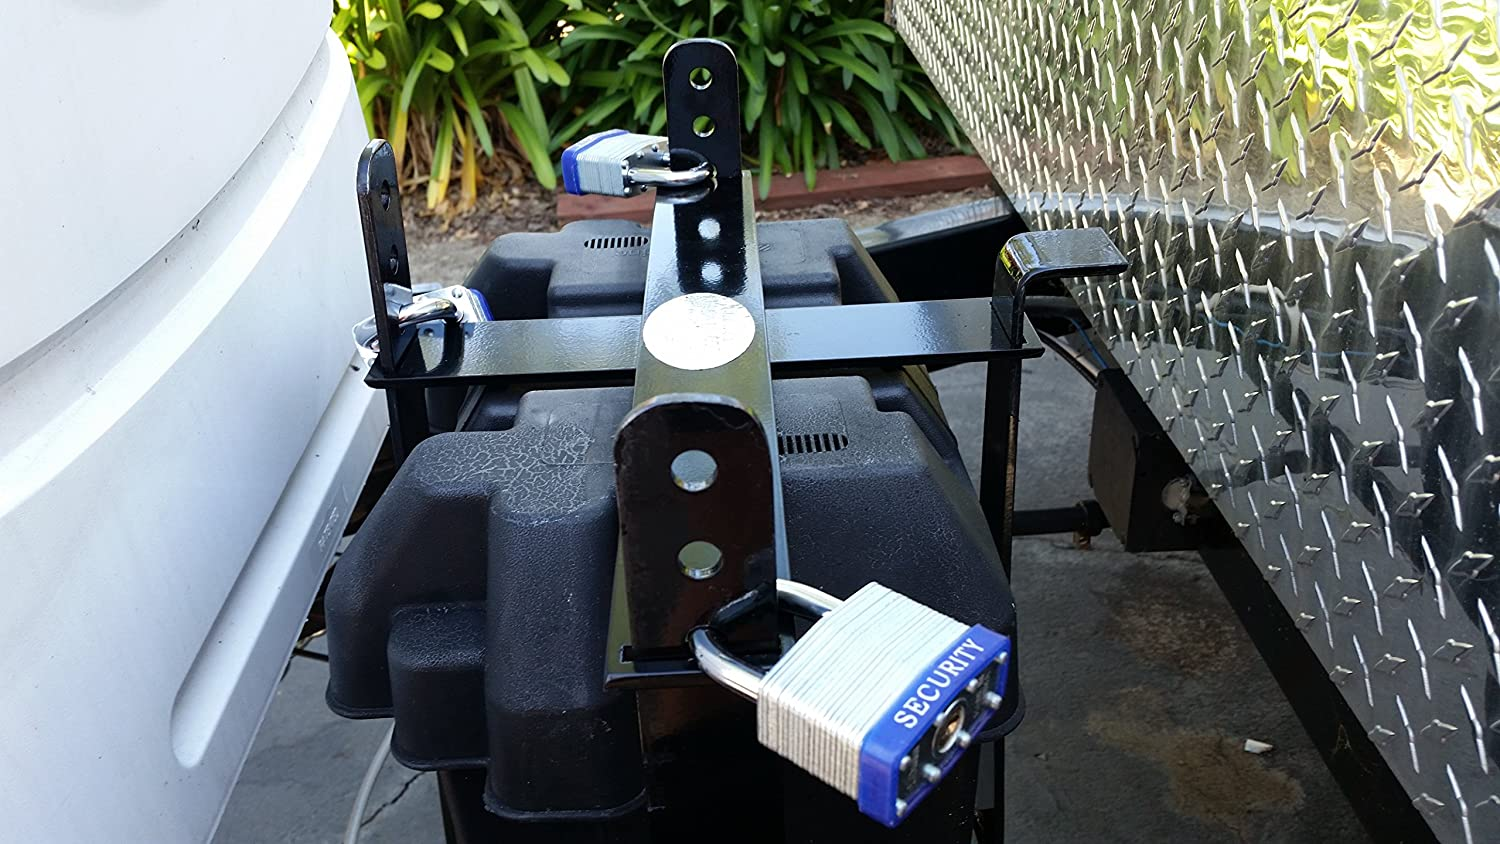 Single RV Battery Lock, Locks Battery Boxes for RVs, Campers, and Trailers